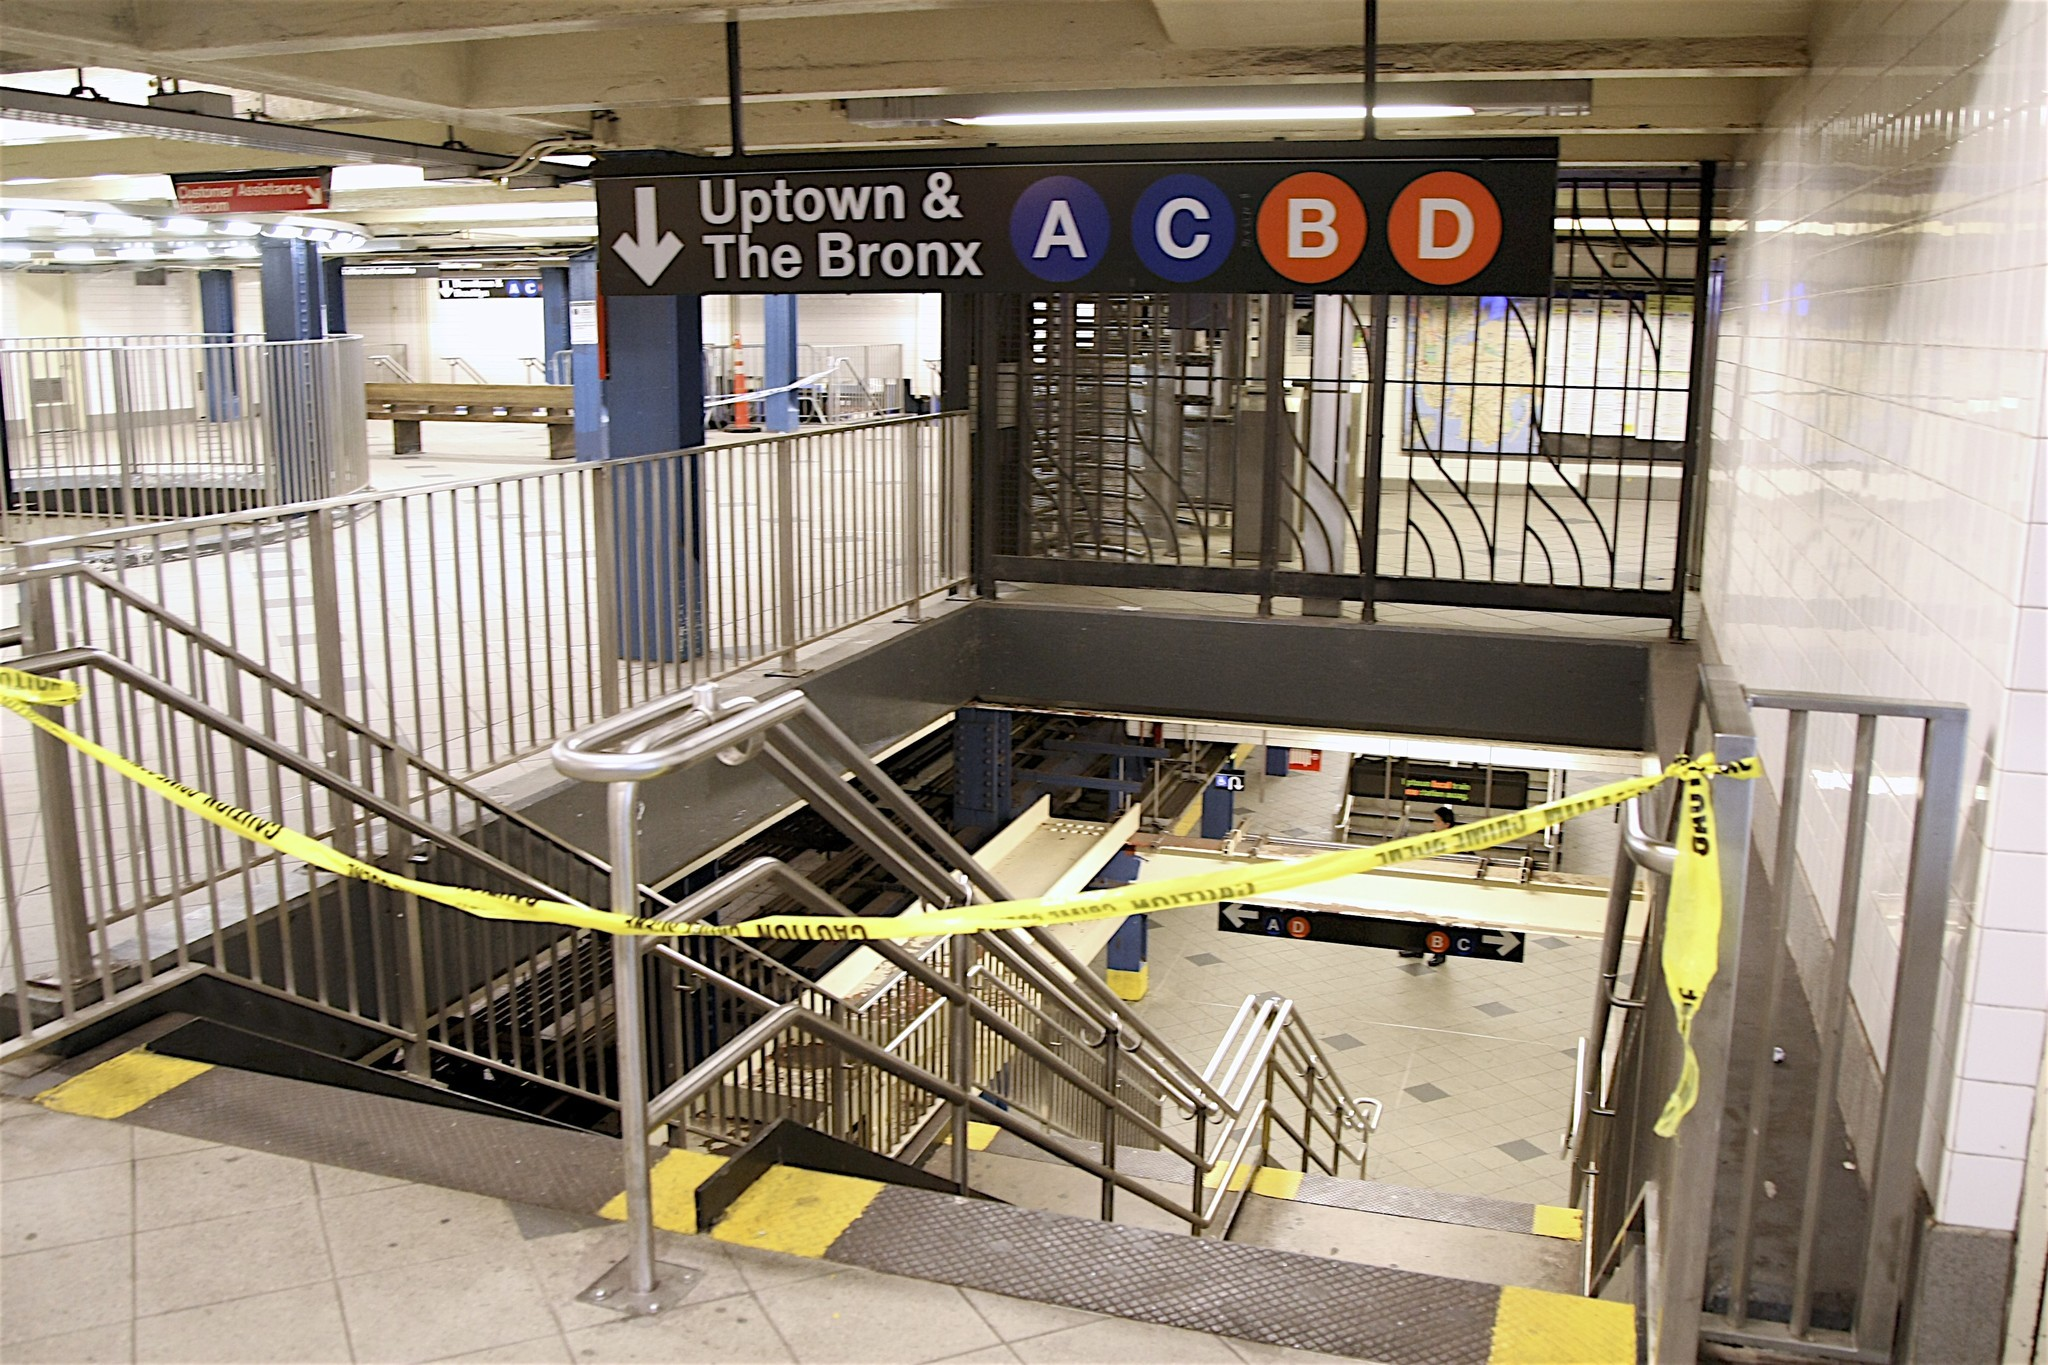 Man stabbed with scissors, shoved onto NYC subway tracks in unprovoked attack